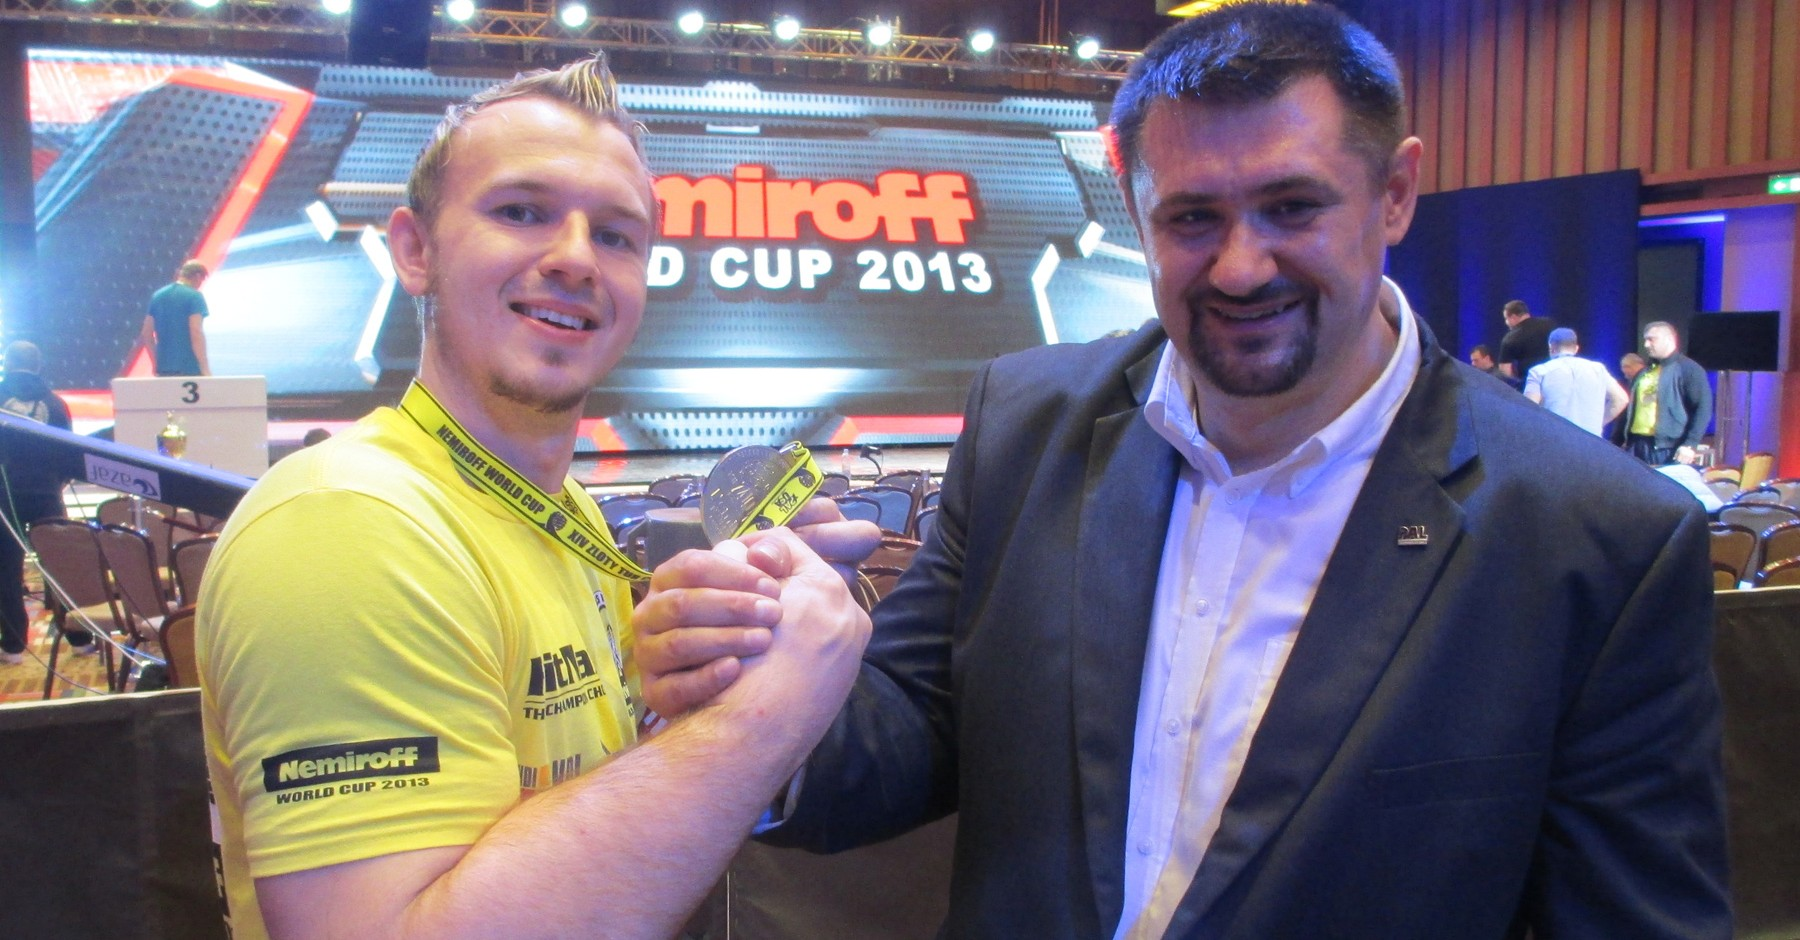 WorldCup 2013 - Schlitte and host Igor Mazurenko